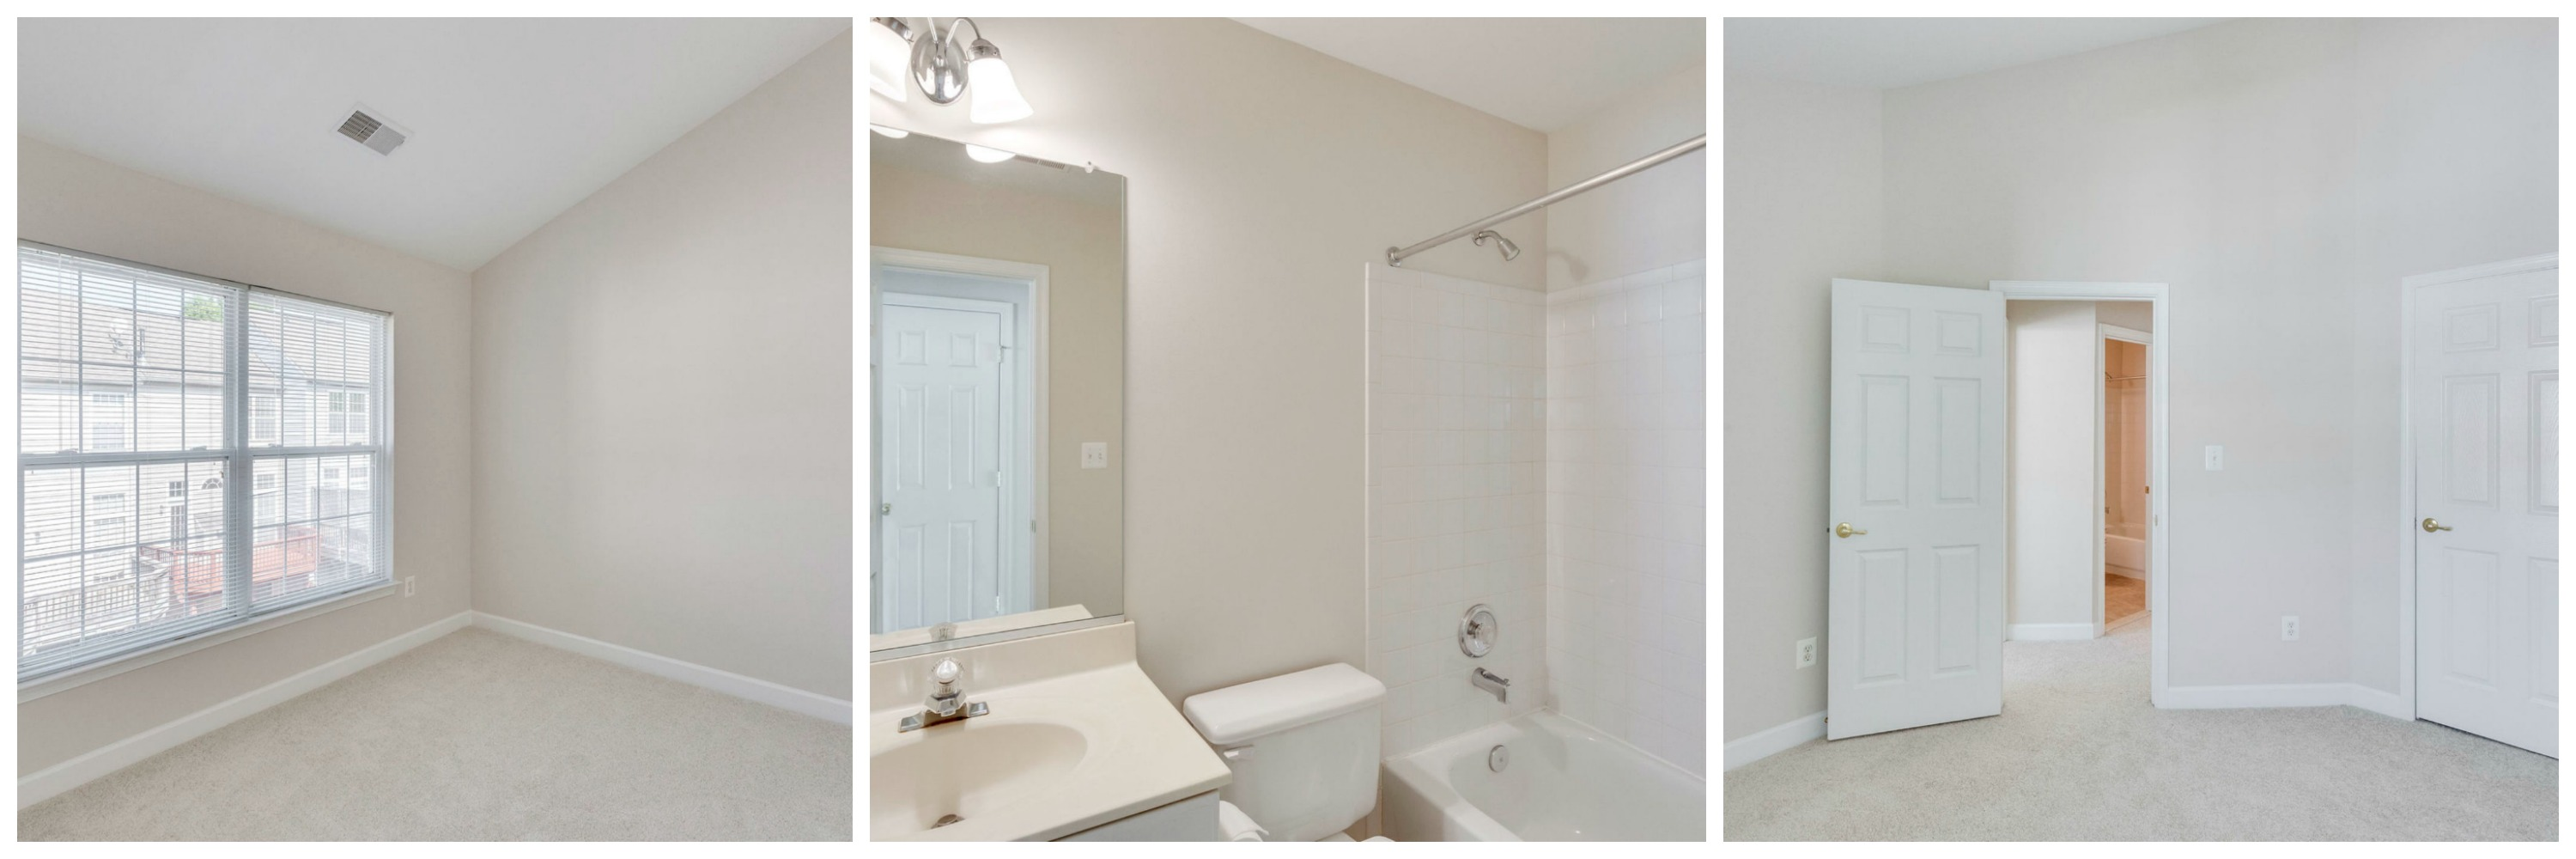 47623 Weatherburn Ter_ Additional Bedrooms and Bath